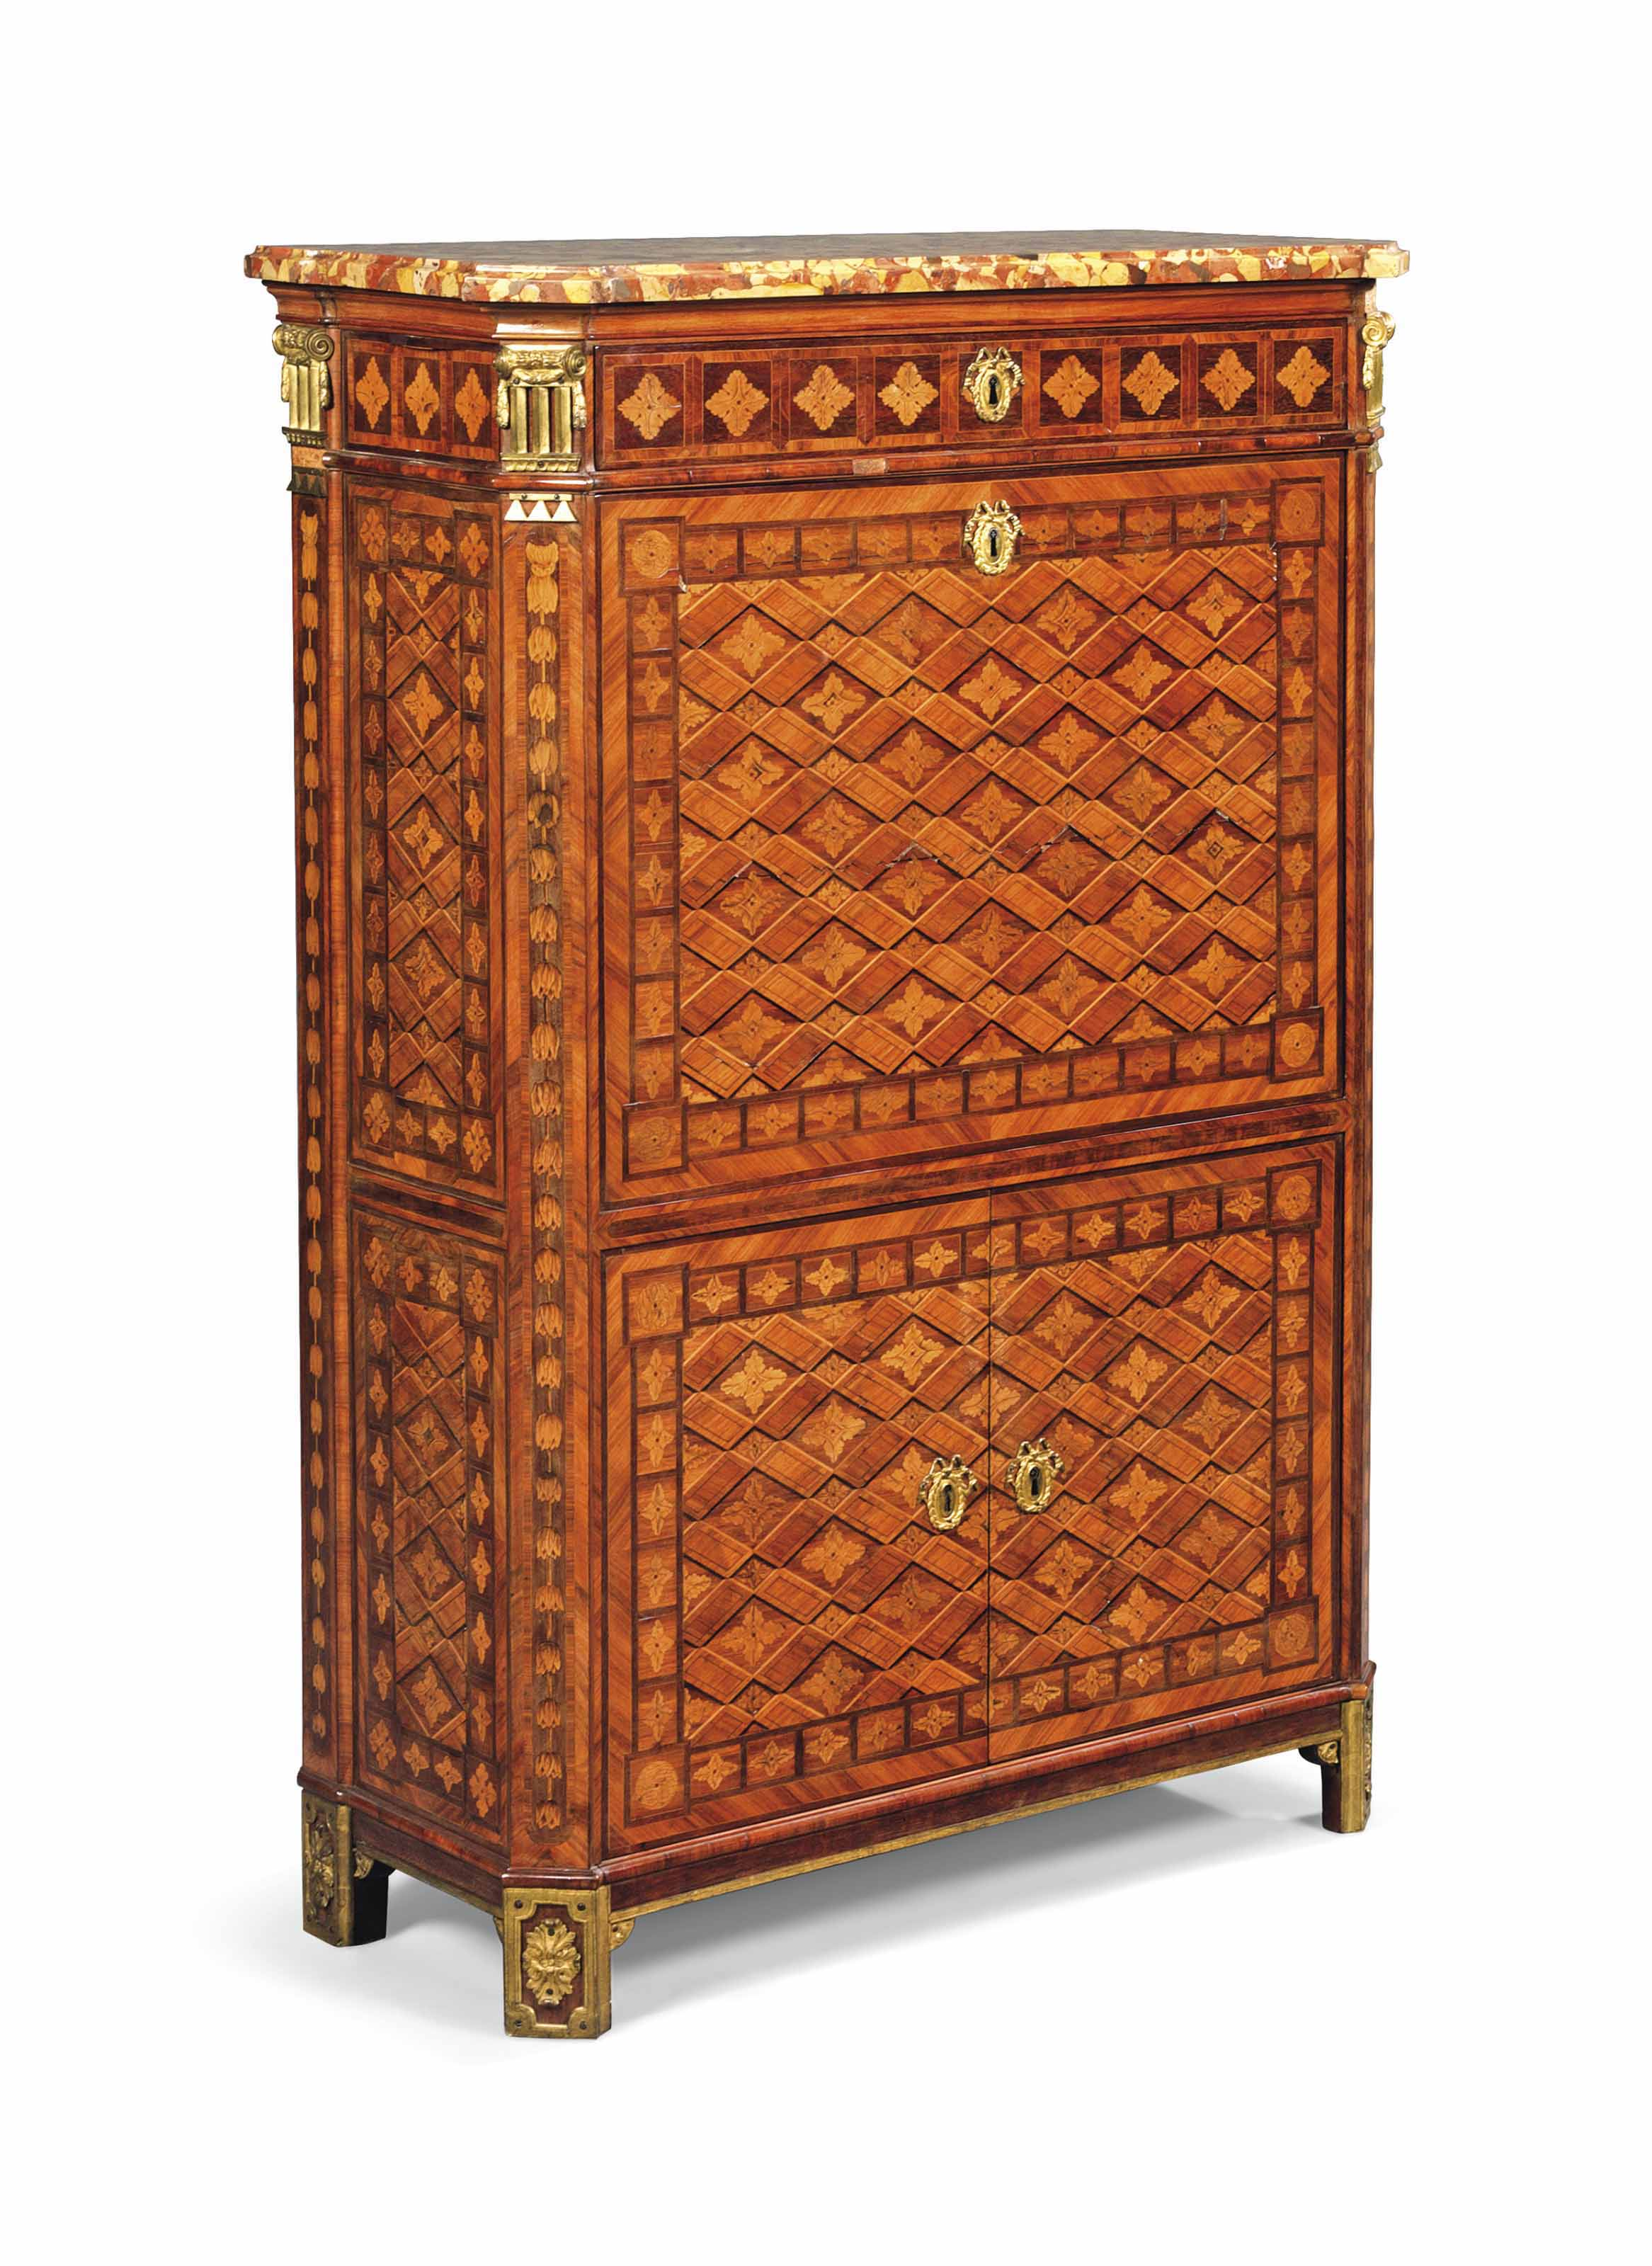 A LOUIS XVI ORMOLU-MOUNTED AMARANTH, BOIS SATINE AND TULIPWOOD, PARQUETRY AND MARQUETRY SECRETAIRE A ABATTANT